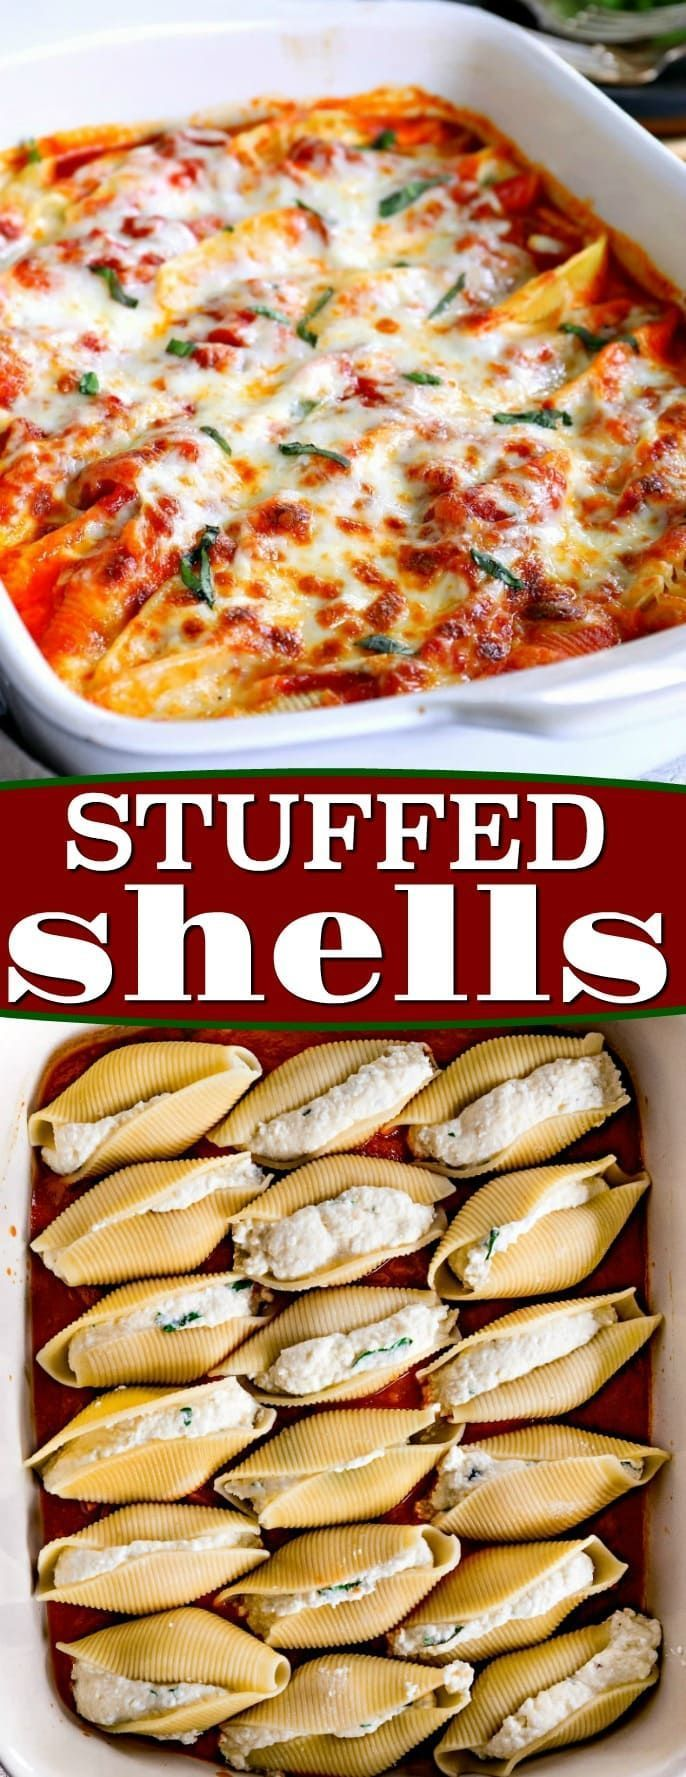 Stuffed Shells are the perfect easy, weeknight dinner. Jumbo pasta shells are stuffed with a smooth, creamy, cheesy filling flavored with fresh herbs and baked to absolute perfection. // Mom On Timeout via @